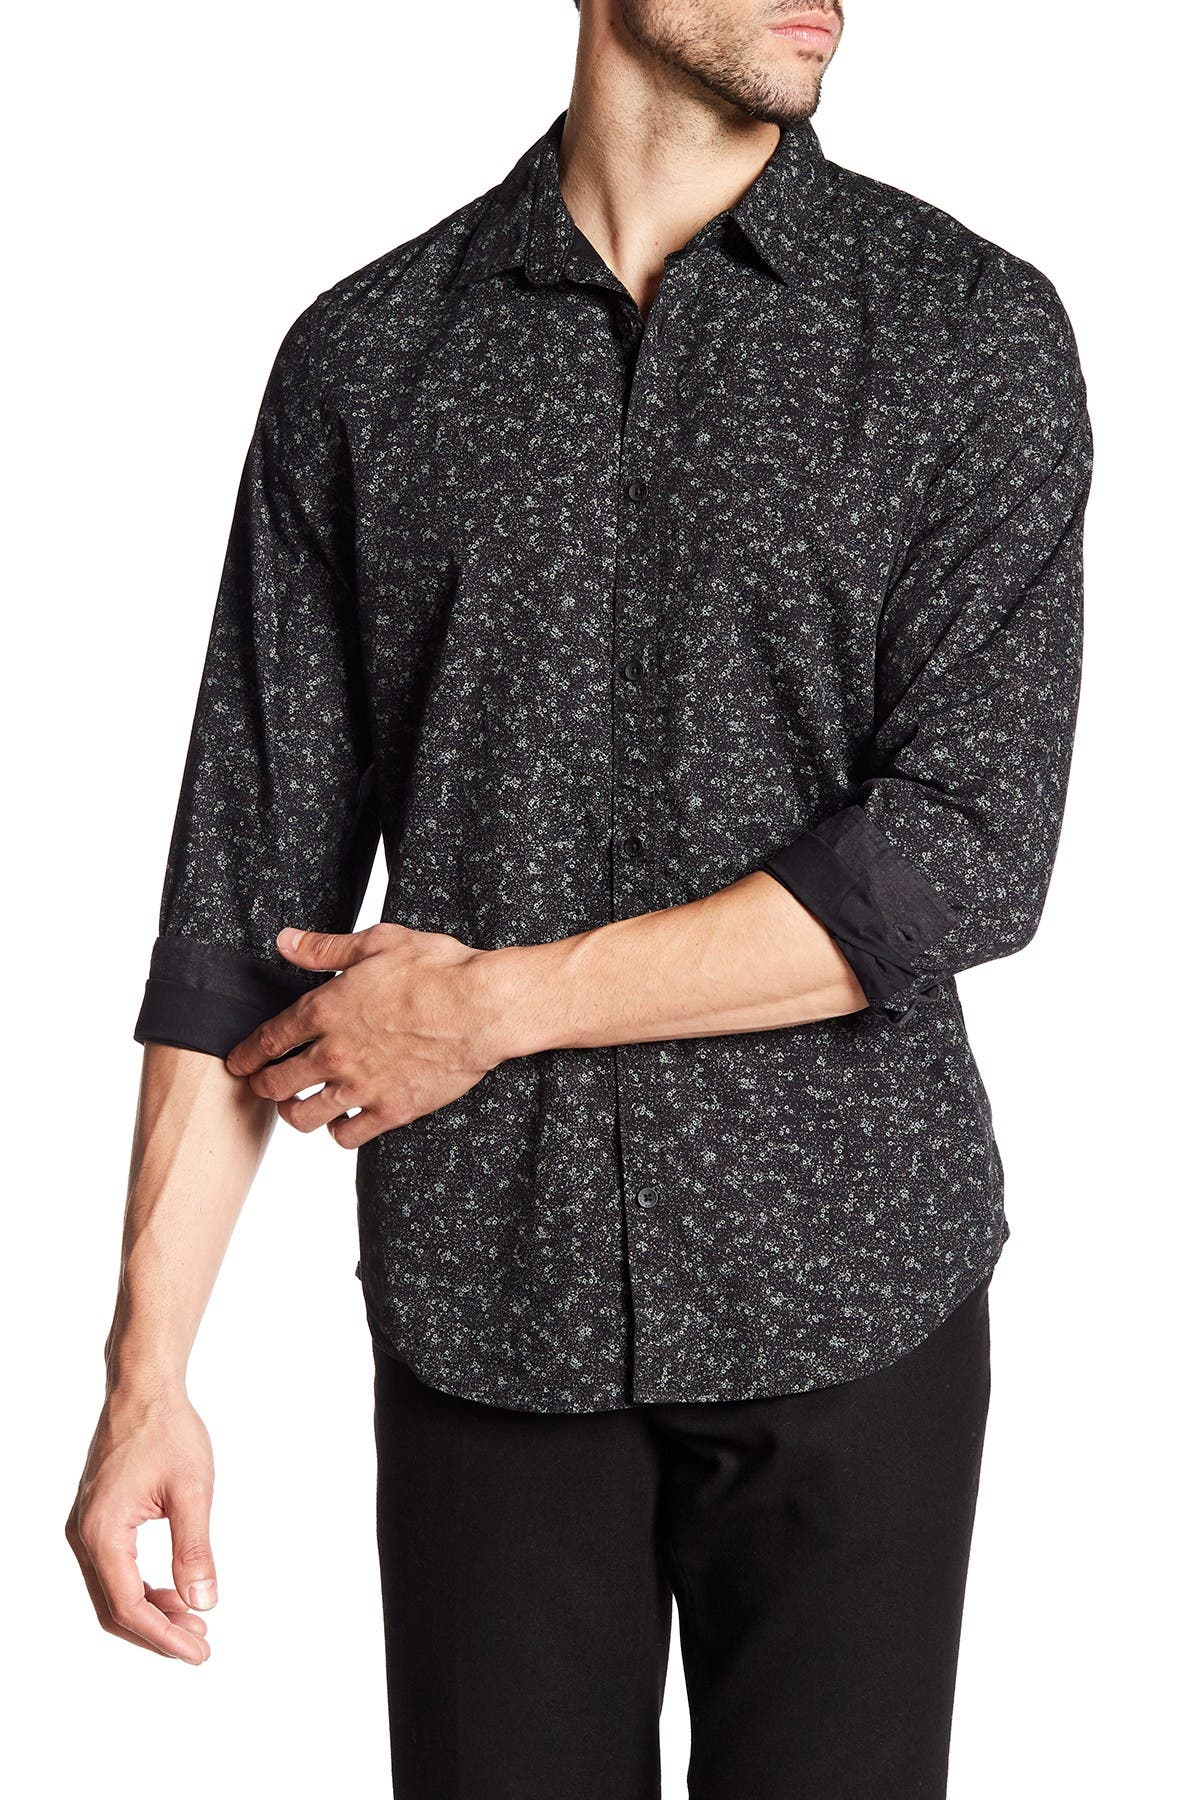 Image of Calvin Klein Jeans Modern Fit Microfloral Patterned Shirt